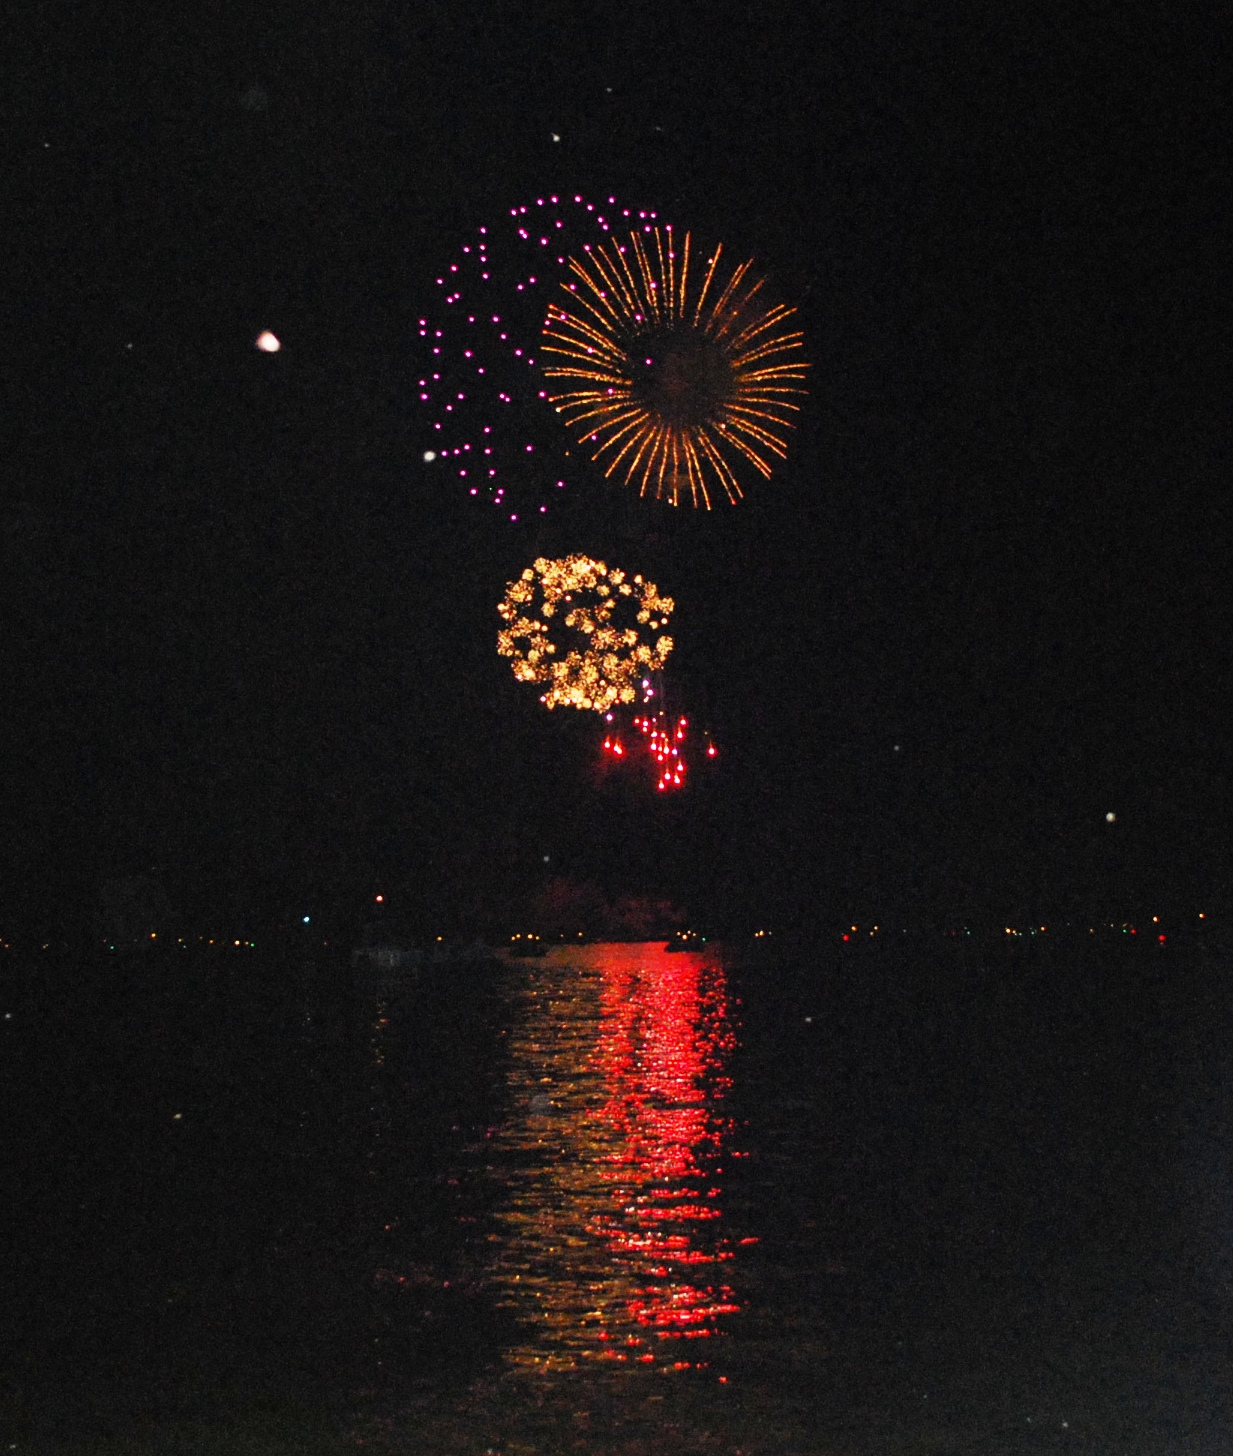 Lake Wateree Fire Works